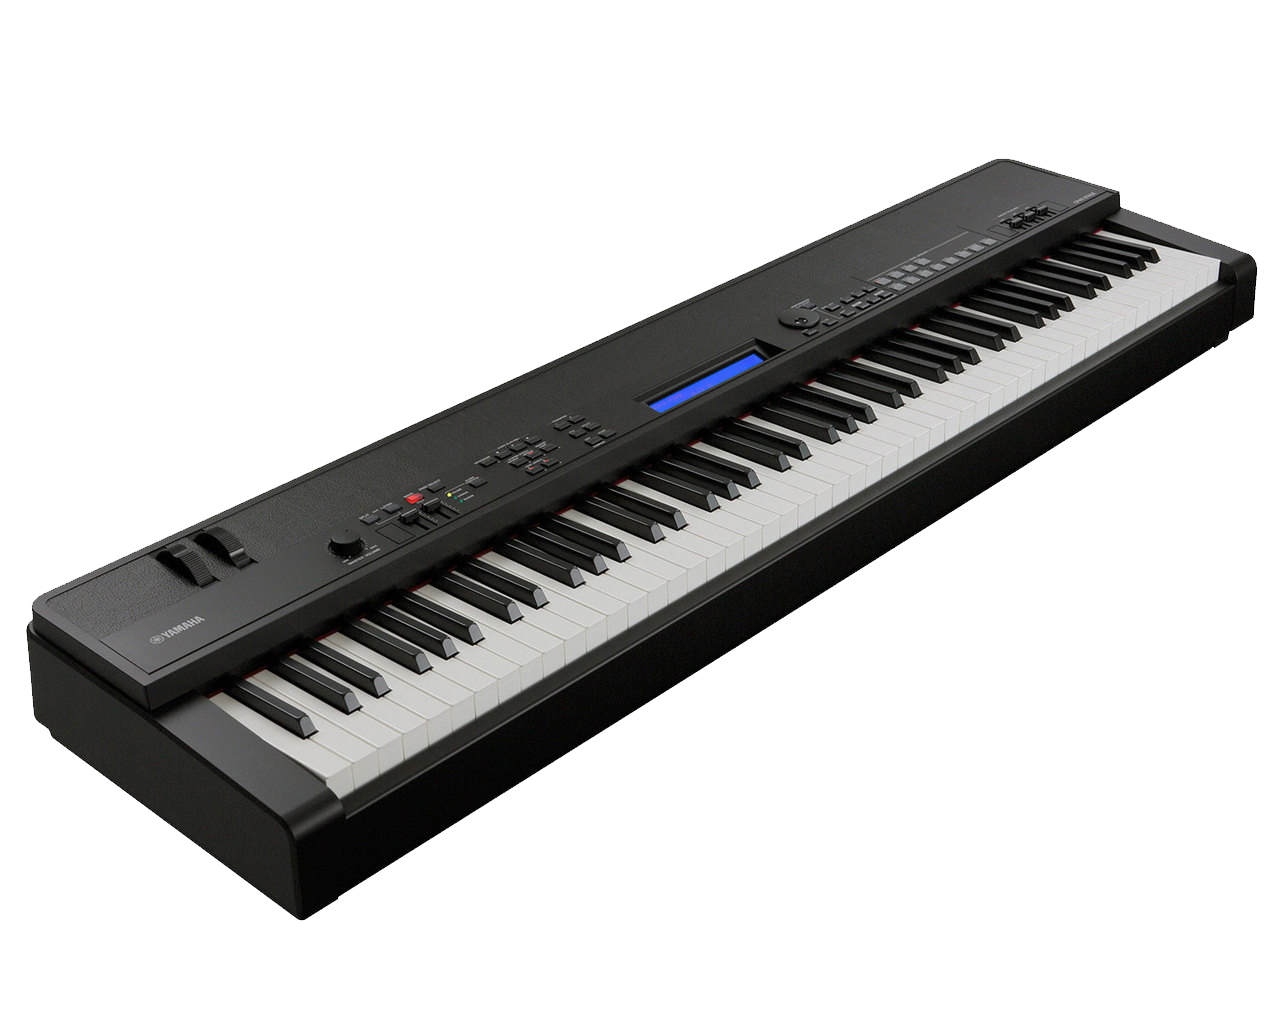 Piano keyboard png. Digital pianos